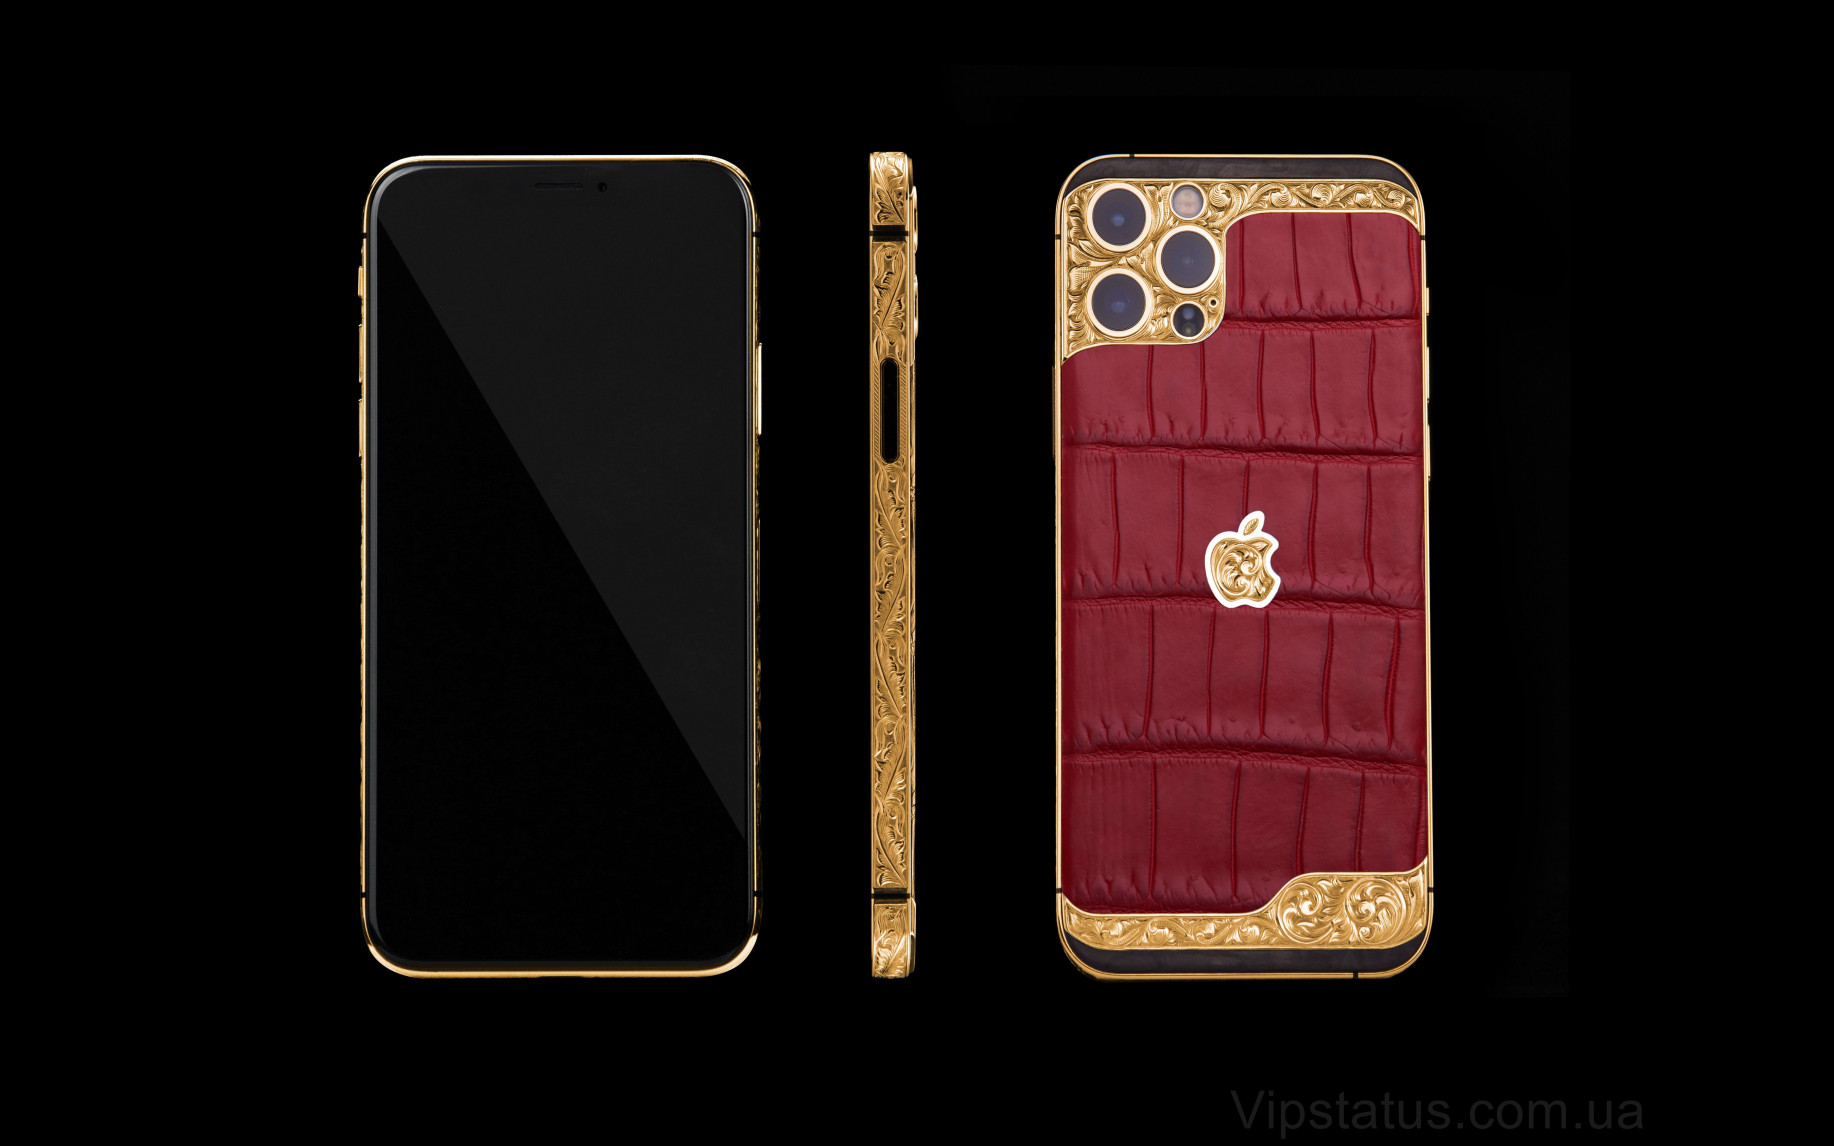 Elite Red Queen Edition IPHONE 12 PRO MAX 512 GB Red Queen Edition IPHONE 12 PRO MAX 512 GB image 4